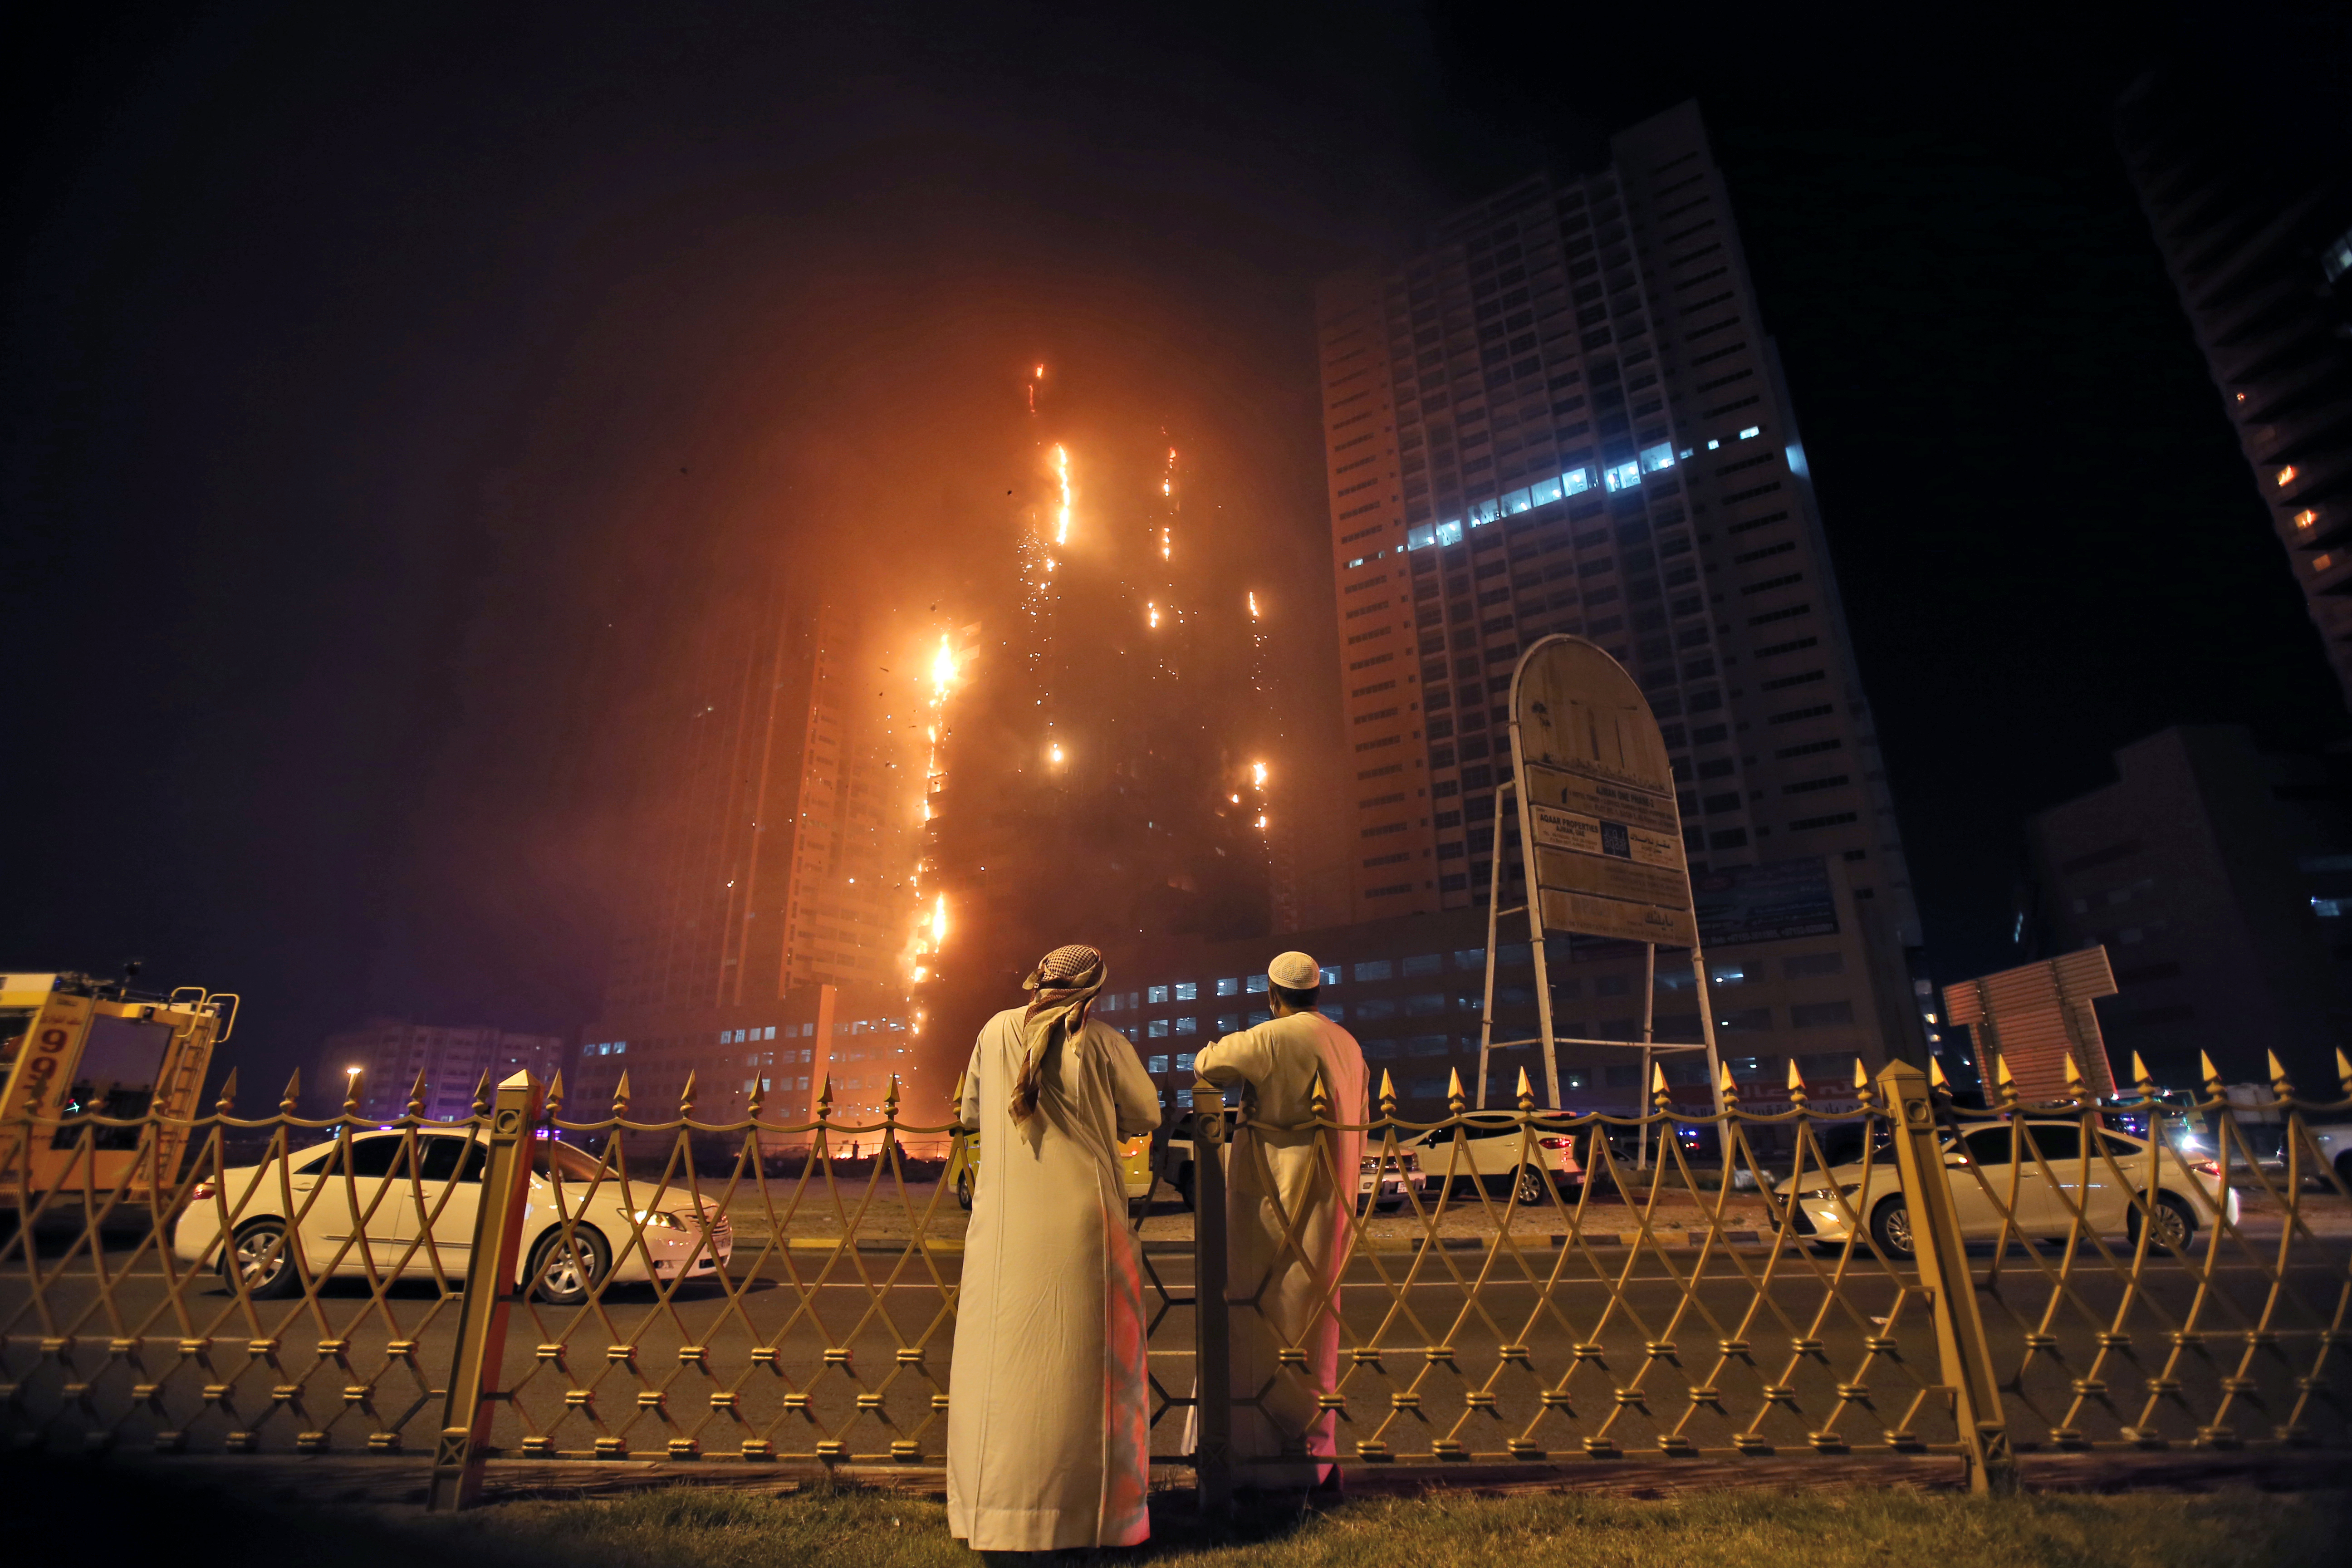 Two Emirati officials watch a high-rise building as a fire spreads up the side of the building in Ajman, United Arab Emirates, early, March 29, 2016.